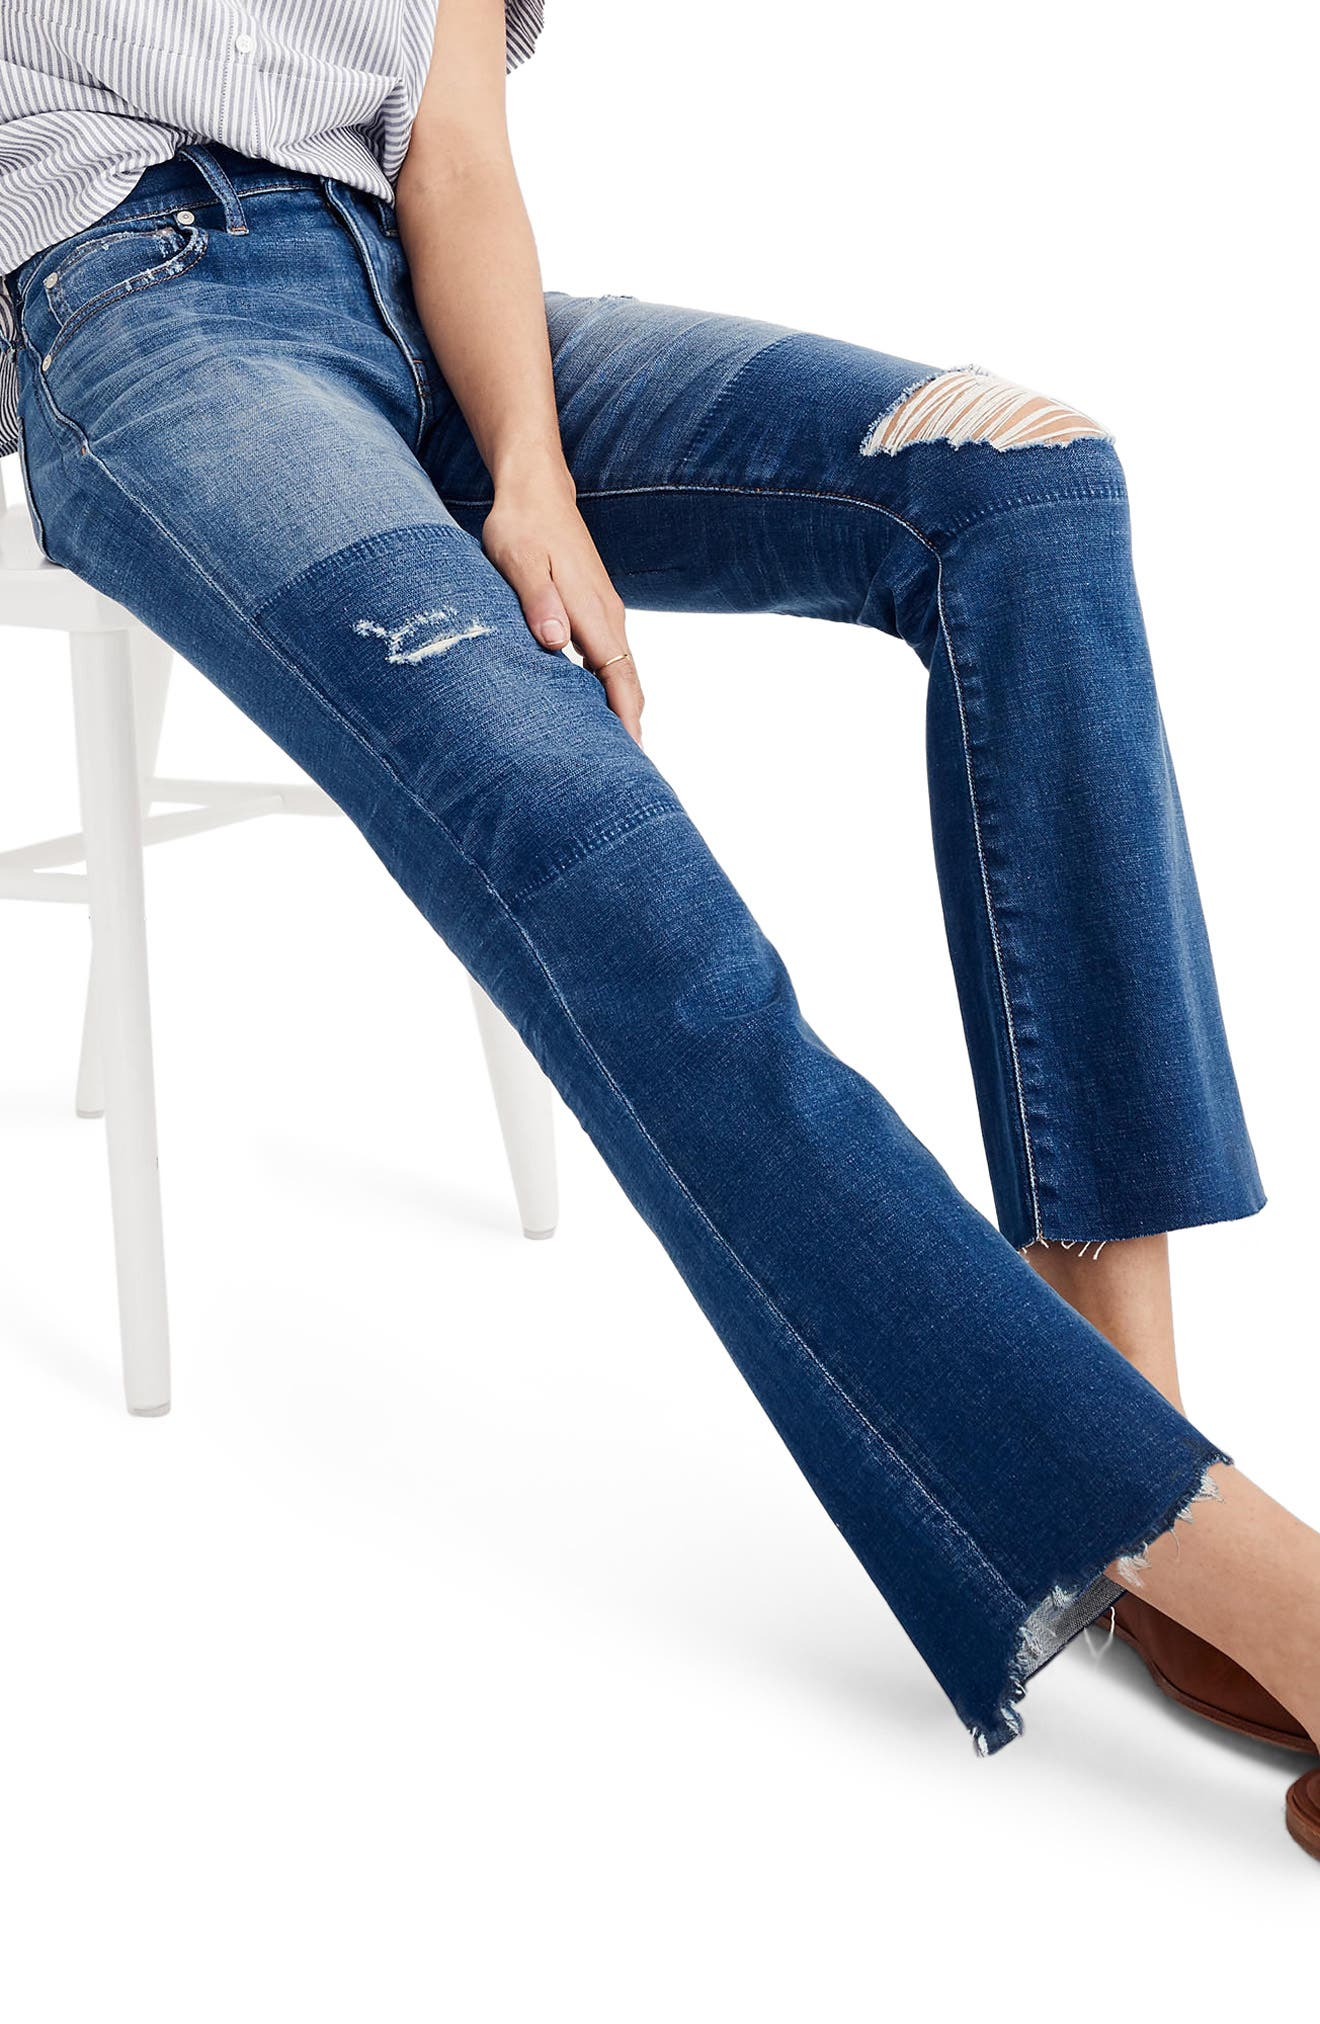 MADEWELL, Cali Ripped Demi Bootleg Crop Jeans, Alternate thumbnail 3, color, 400